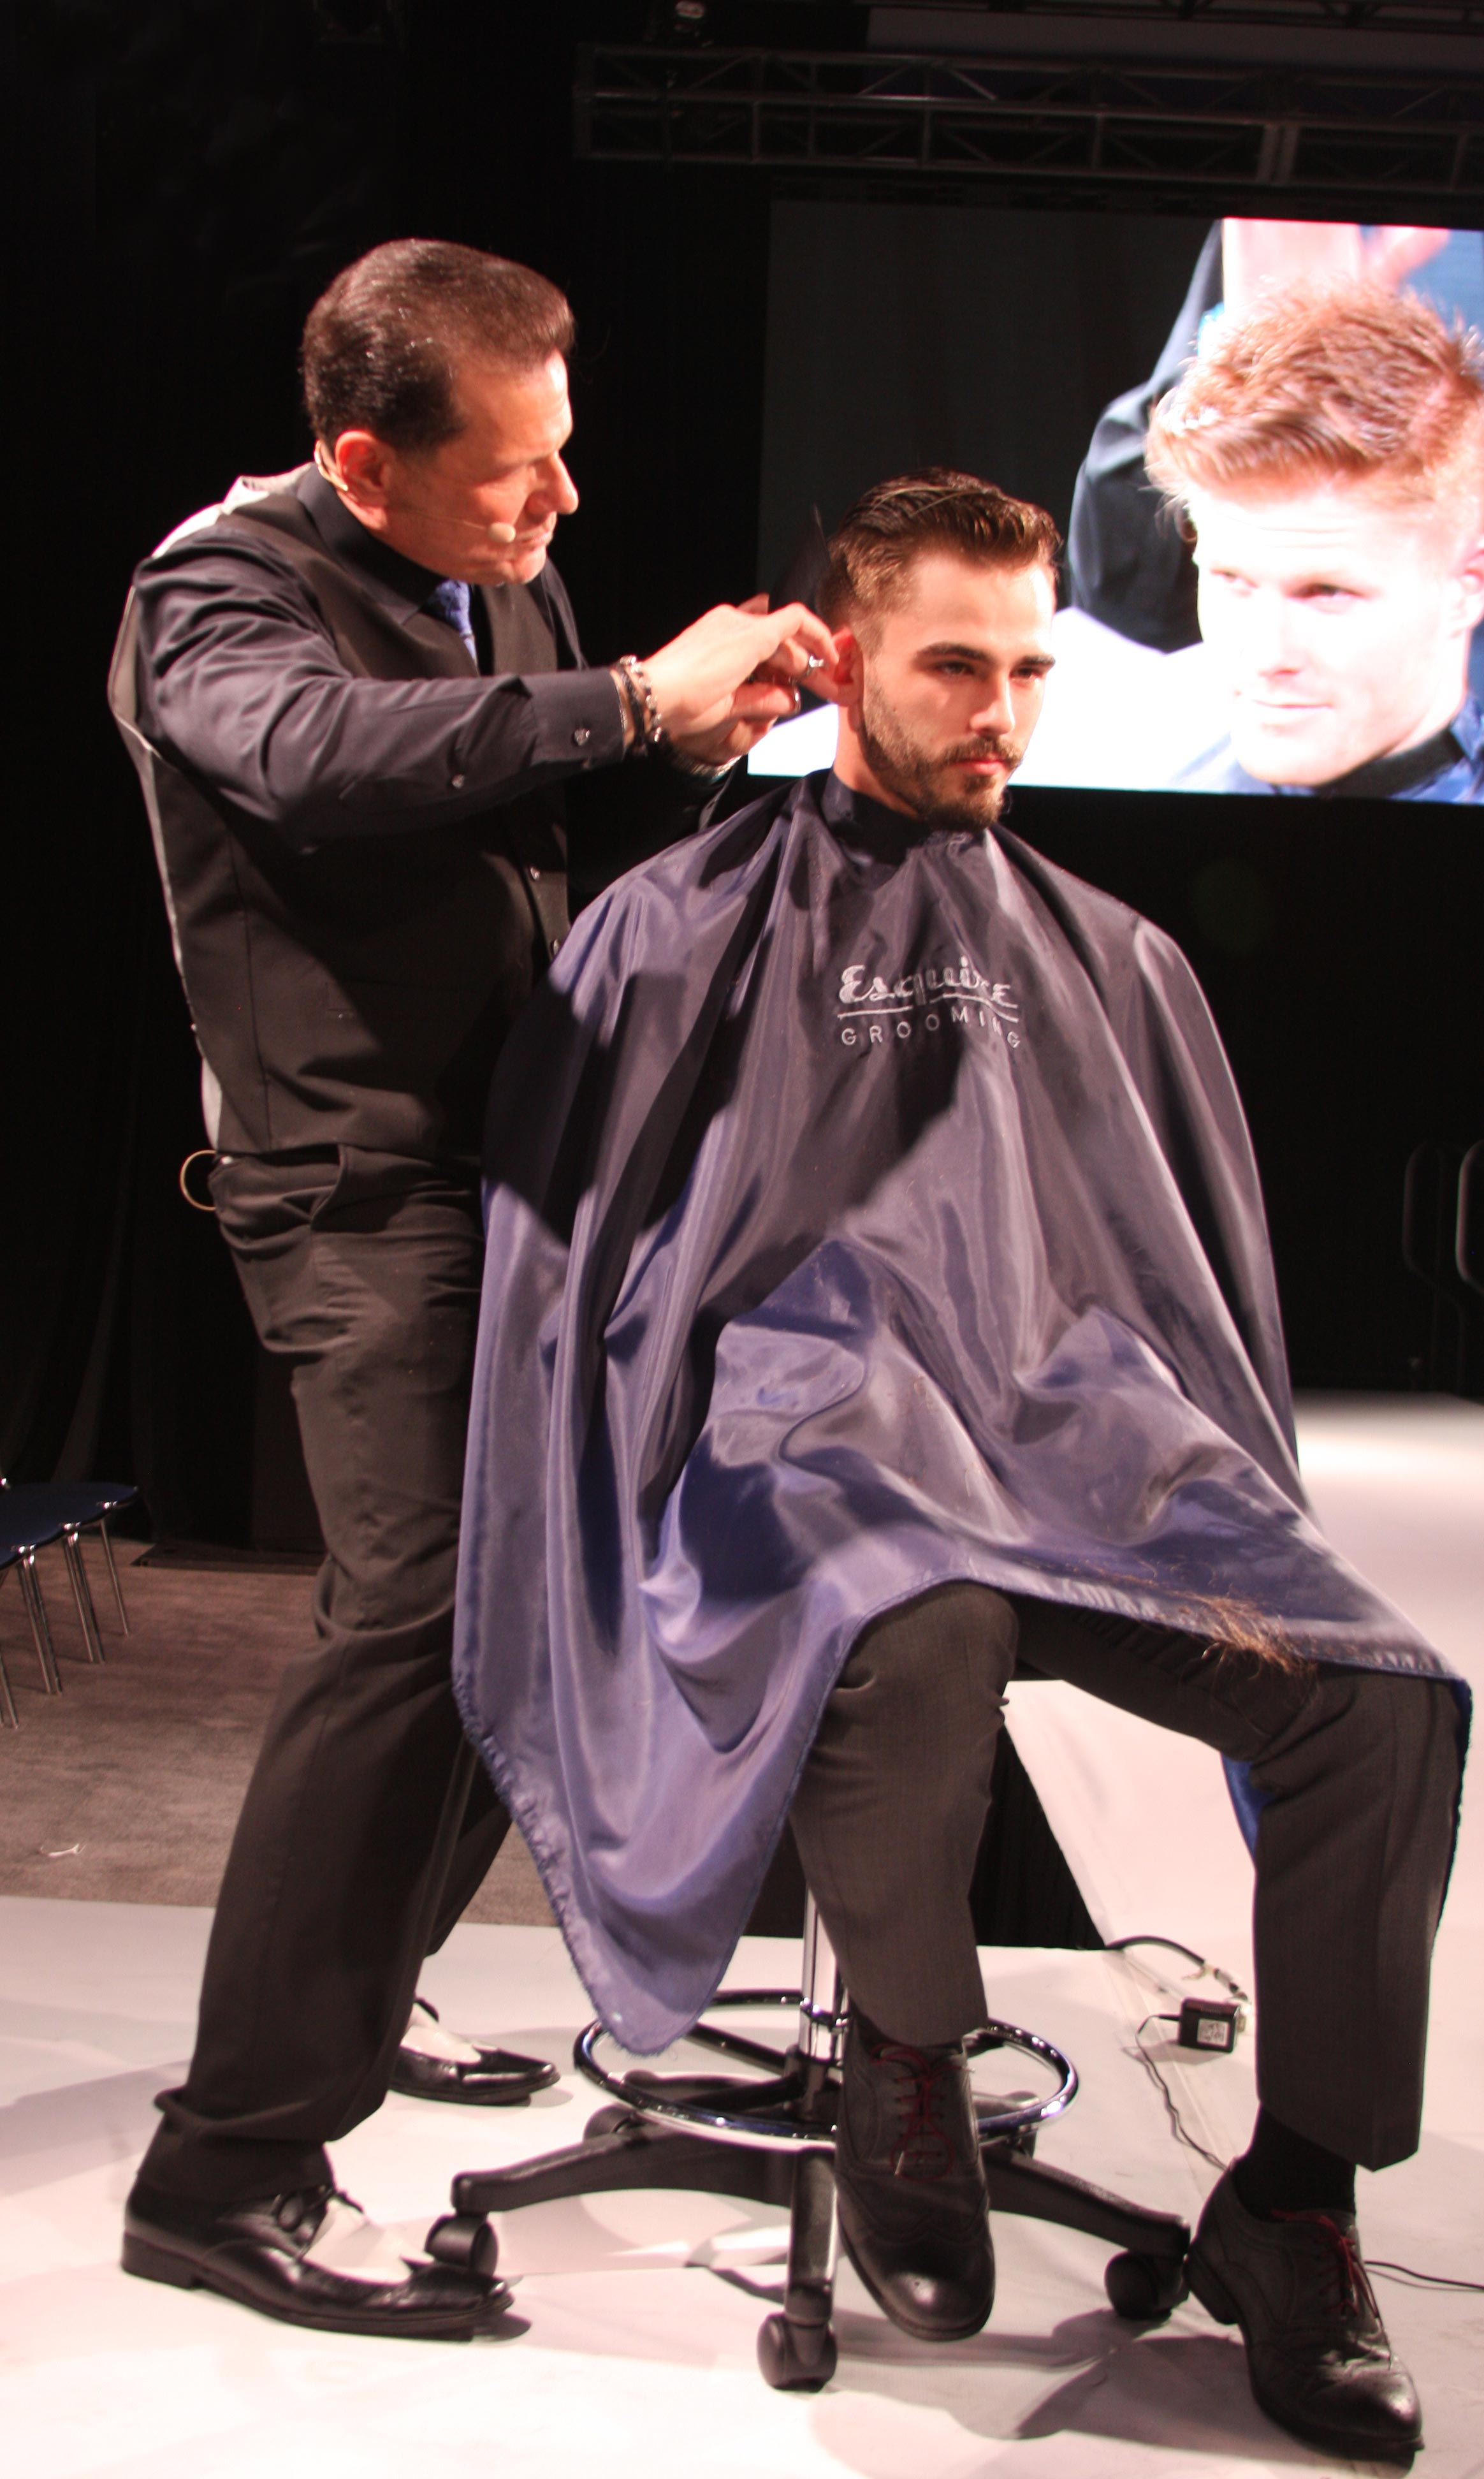 The Men's Hairstylist vs. The Barber and the Scissor-Over-Comb Technique